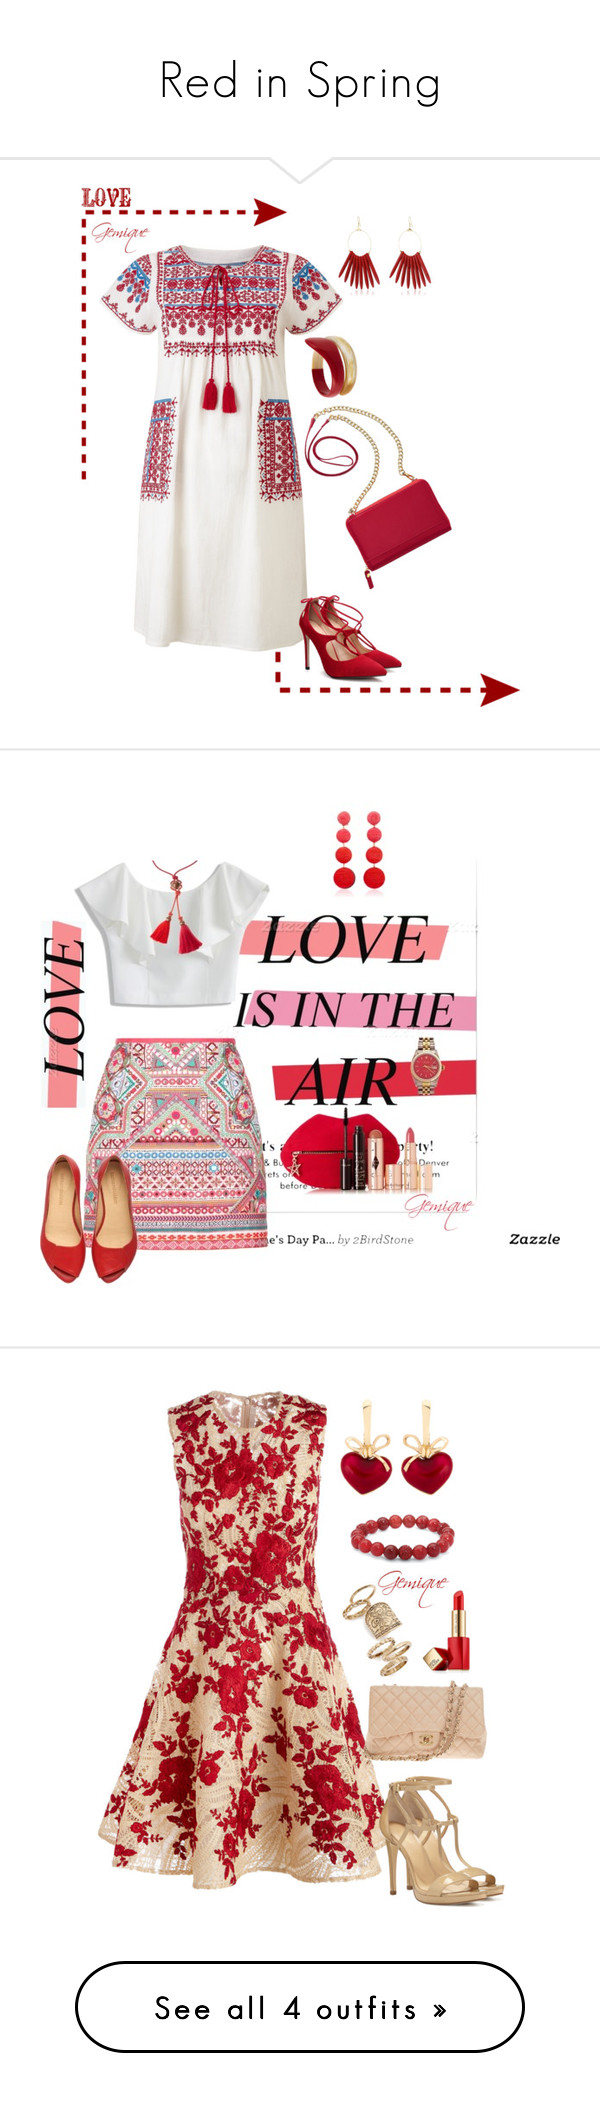 """""""Red in Spring"""" by gemique ❤ liked on Polyvore featuring Star Mela, TravelSmith, Tsumori Chisato, Kenneth Jay Lane, Accessorize, Chicwish, Rebecca de Ravenel, Rolex, Lanvin and Charlotte Tilbury"""